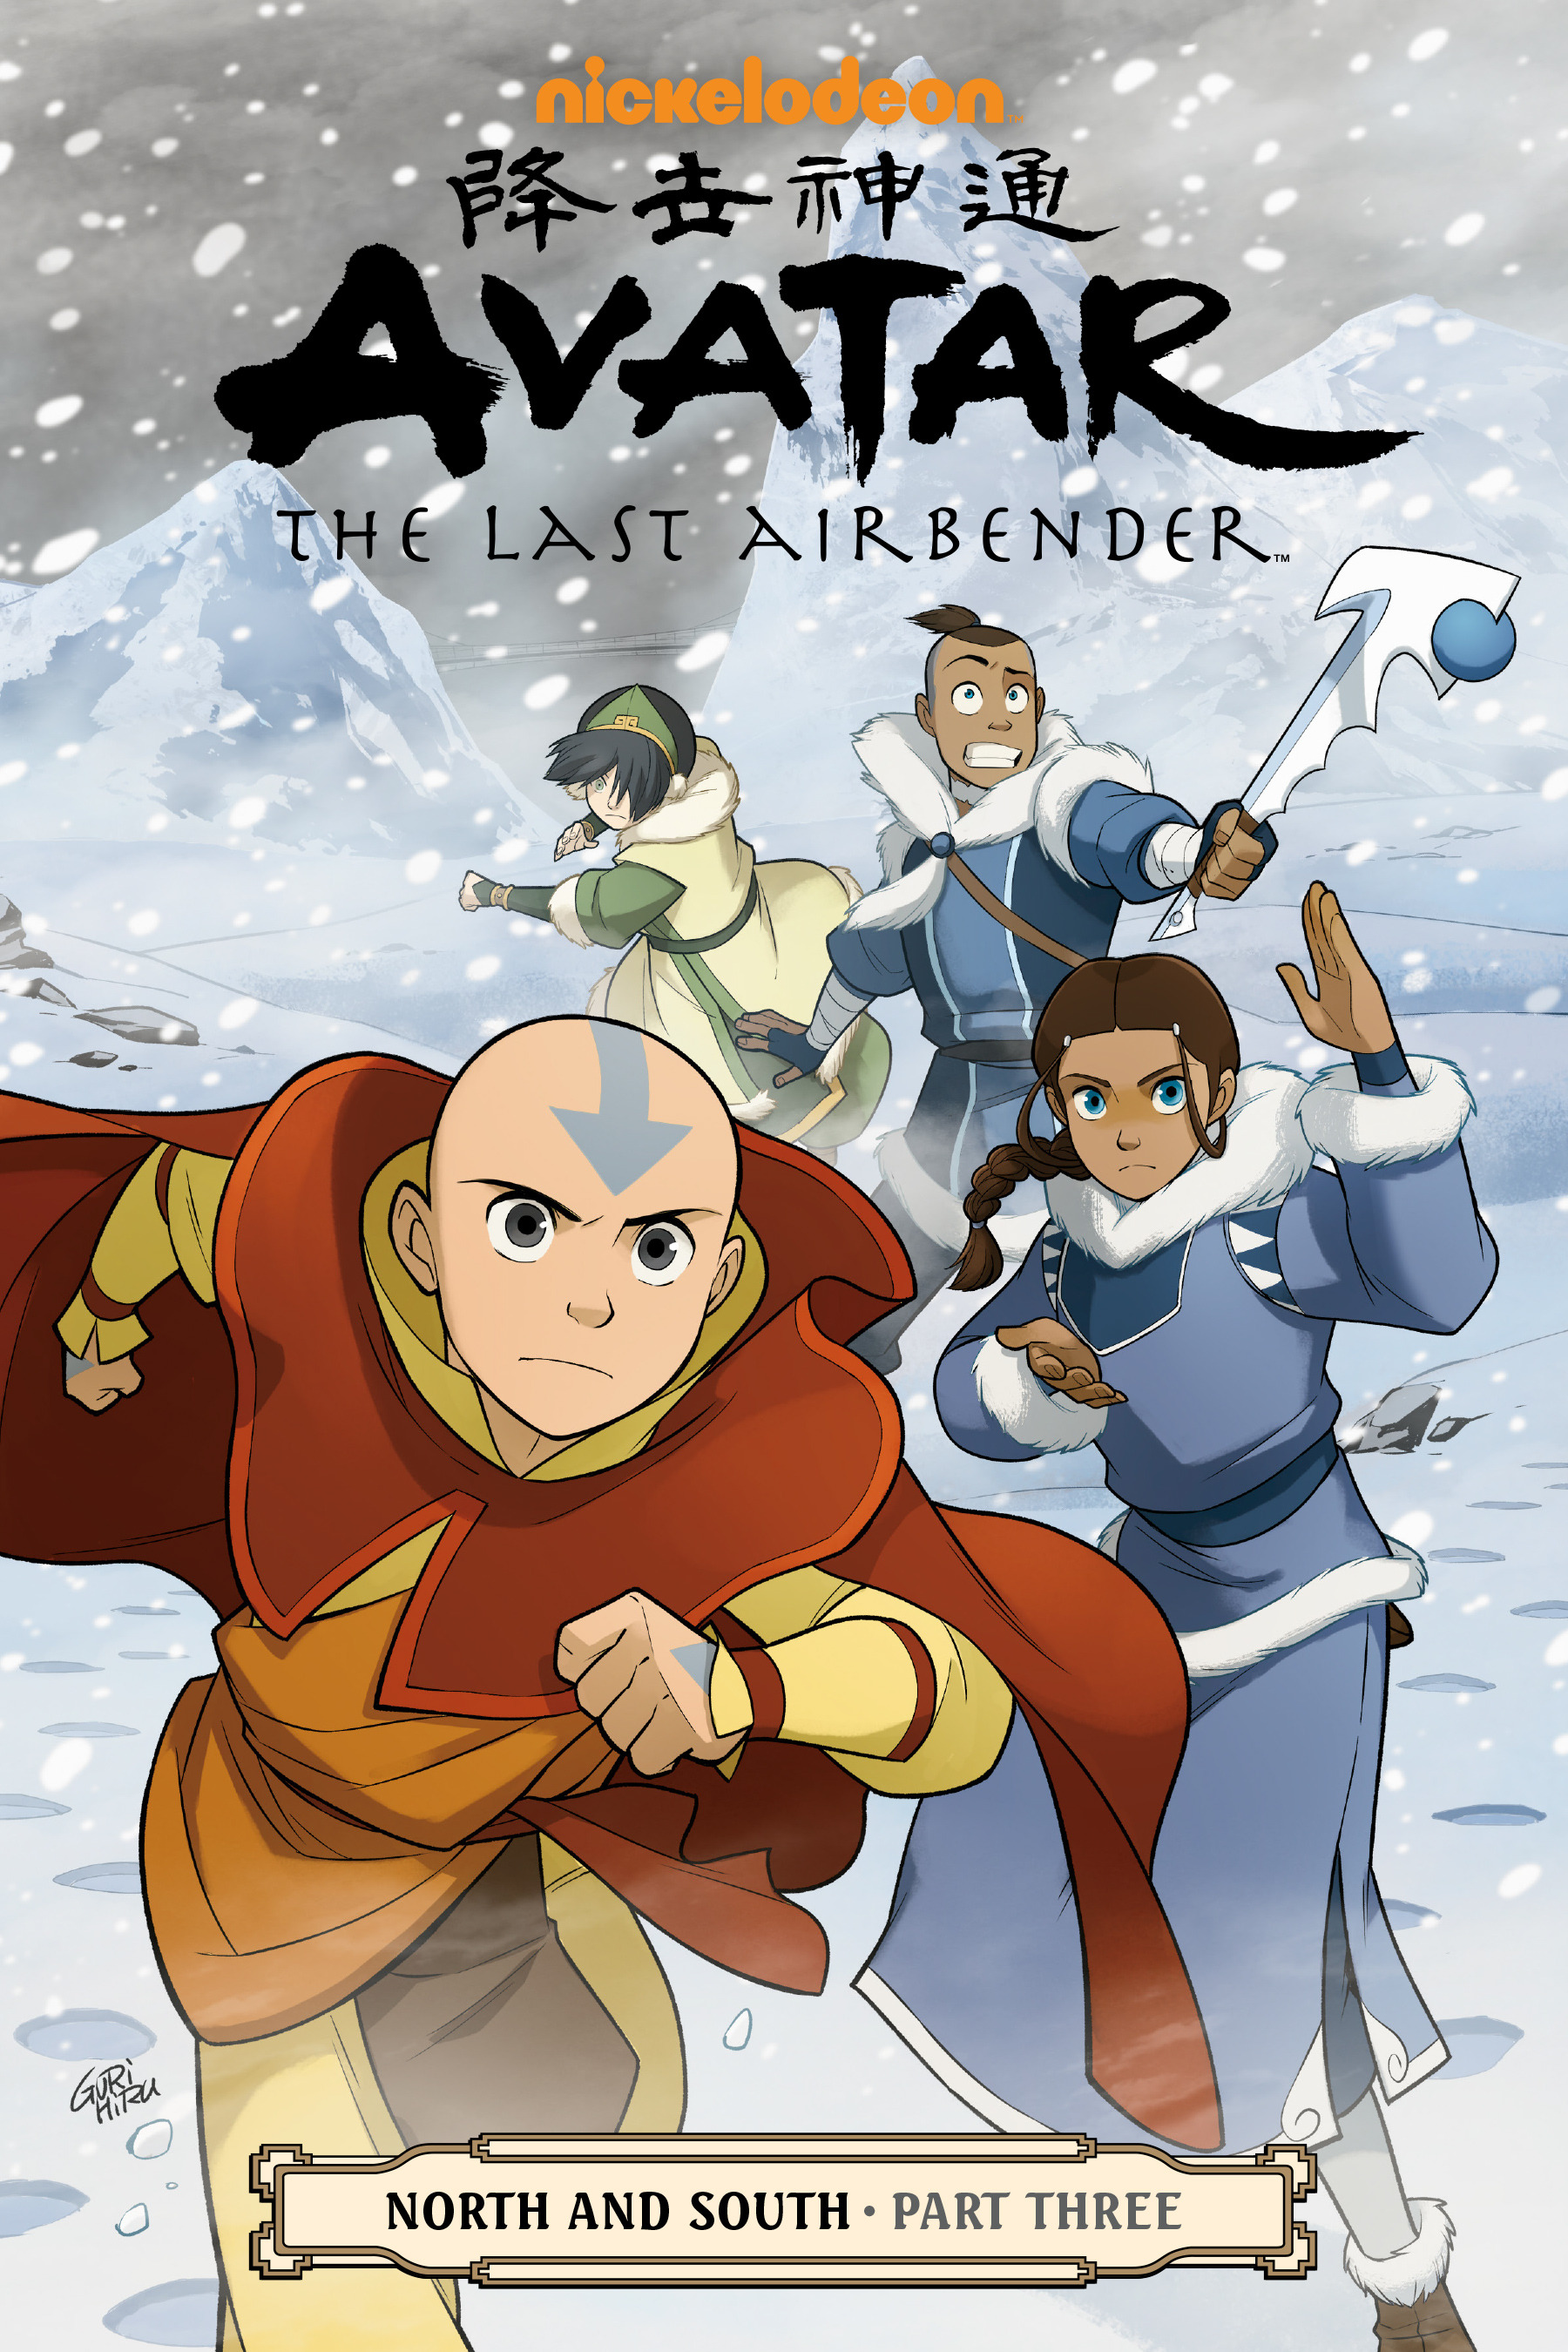 Read online Nickelodeon Avatar: The Last Airbender - North and South comic -  Issue #3 - 1